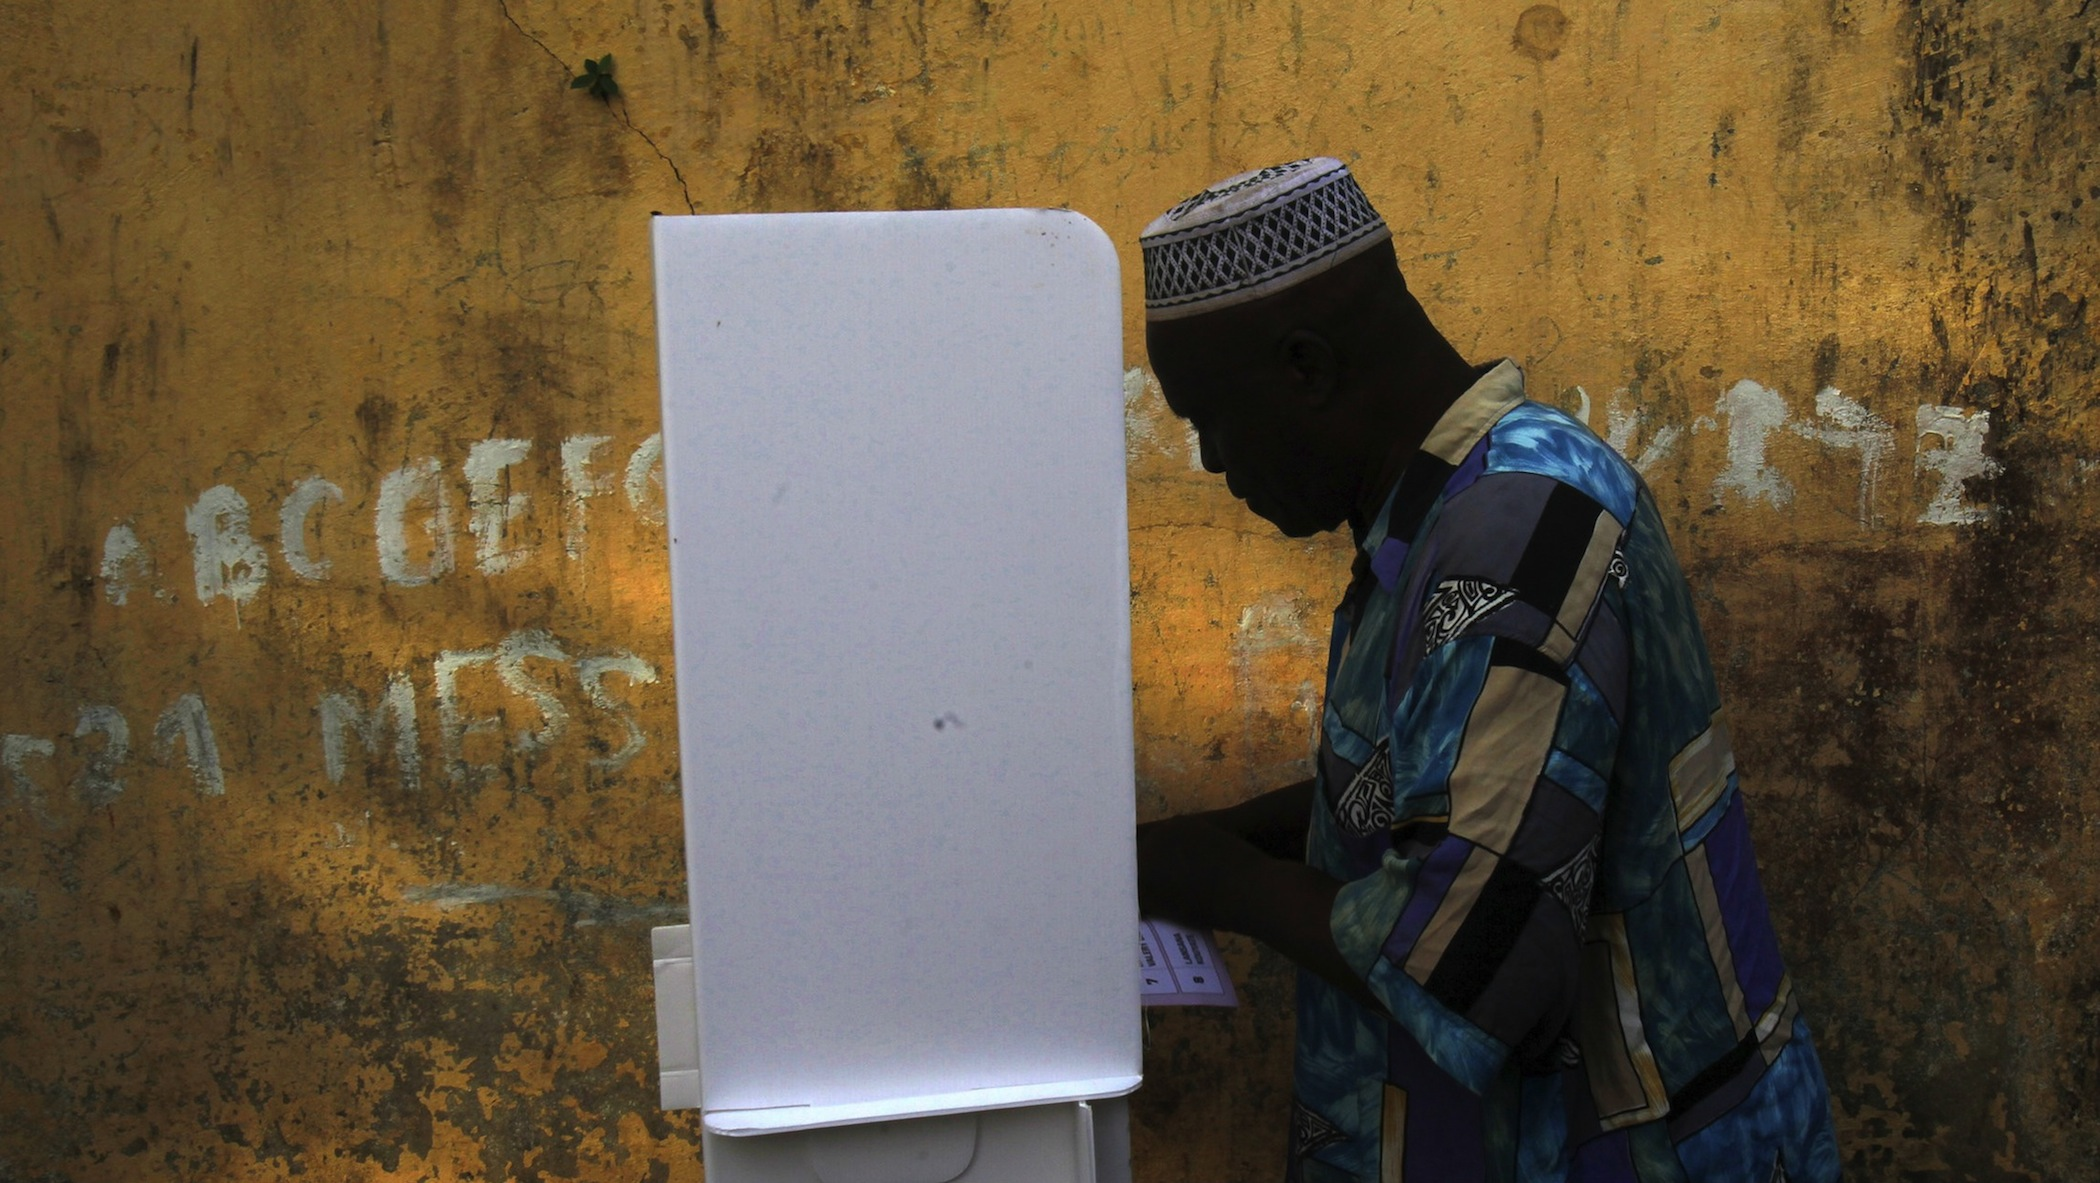 A man casts his vote at a polling station during a presidential election in Conakry, Guinea